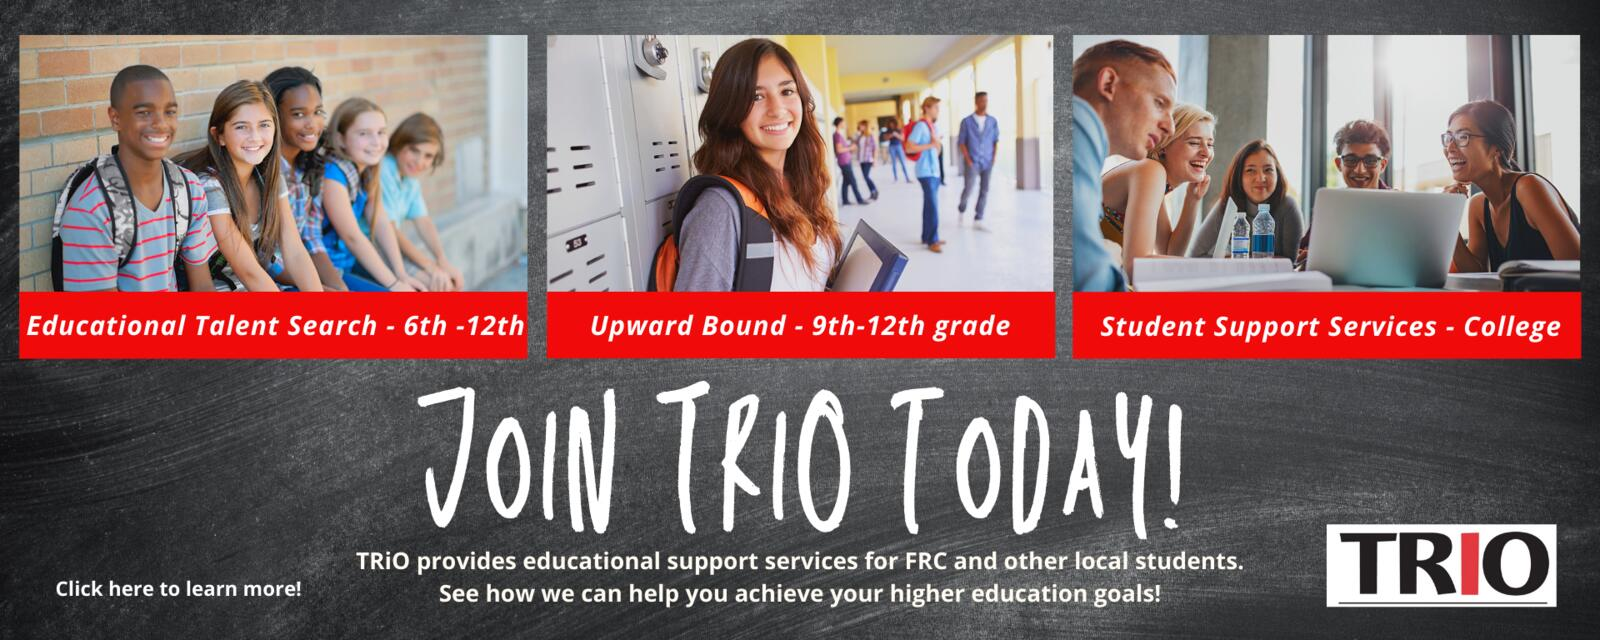 join trio today, trio provides support services for FRC and local students.